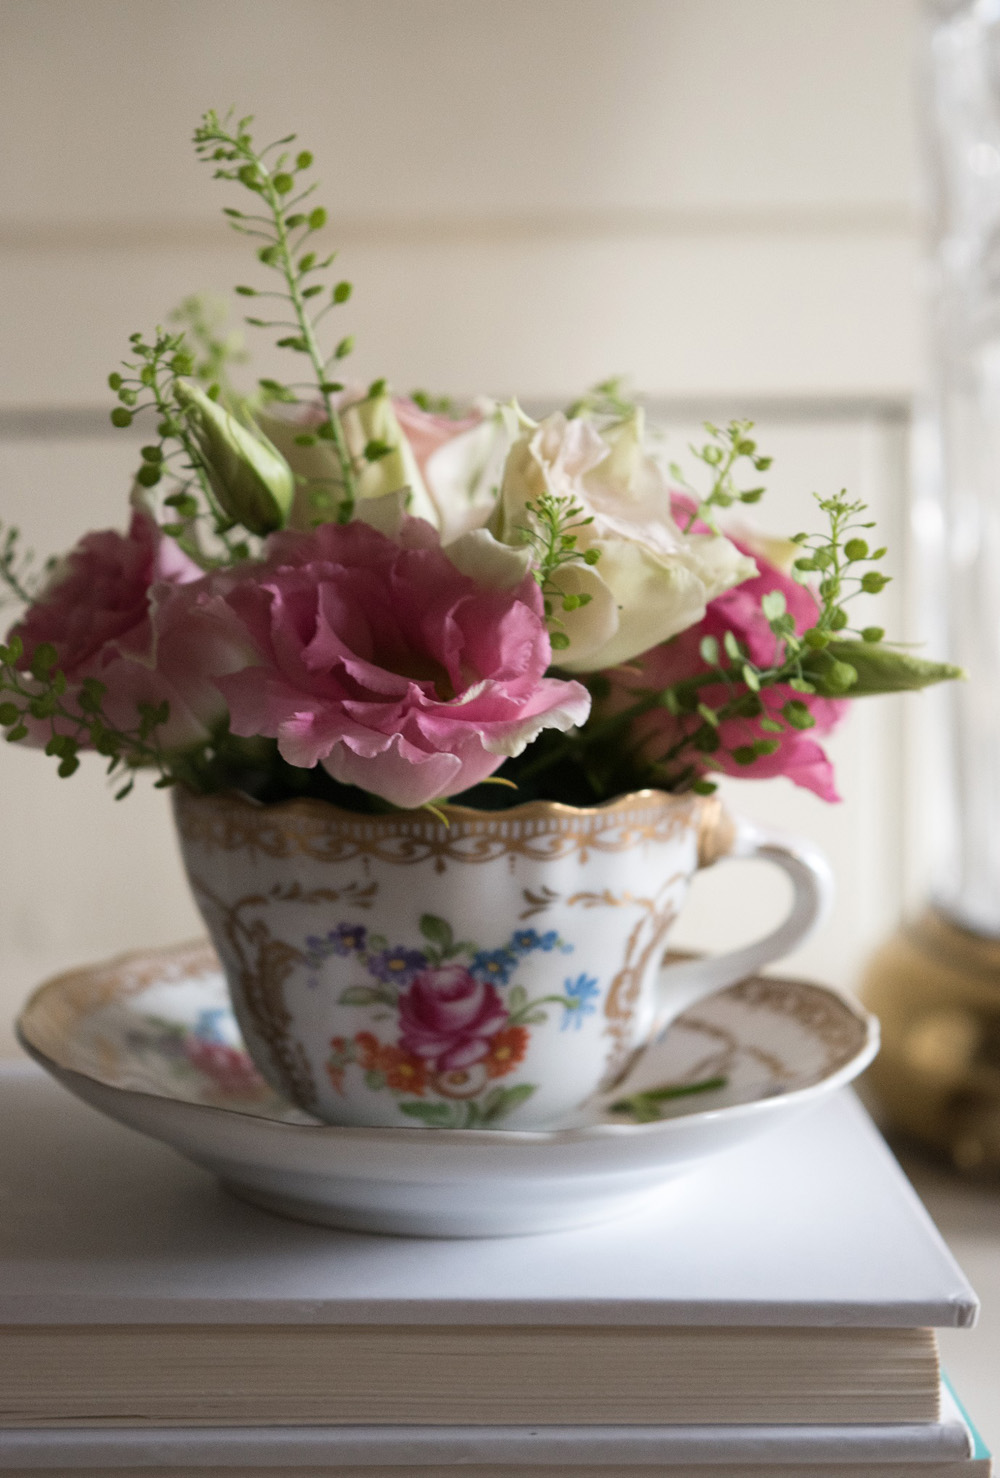 Jenny Blanc Blog - Flowers in Teacup